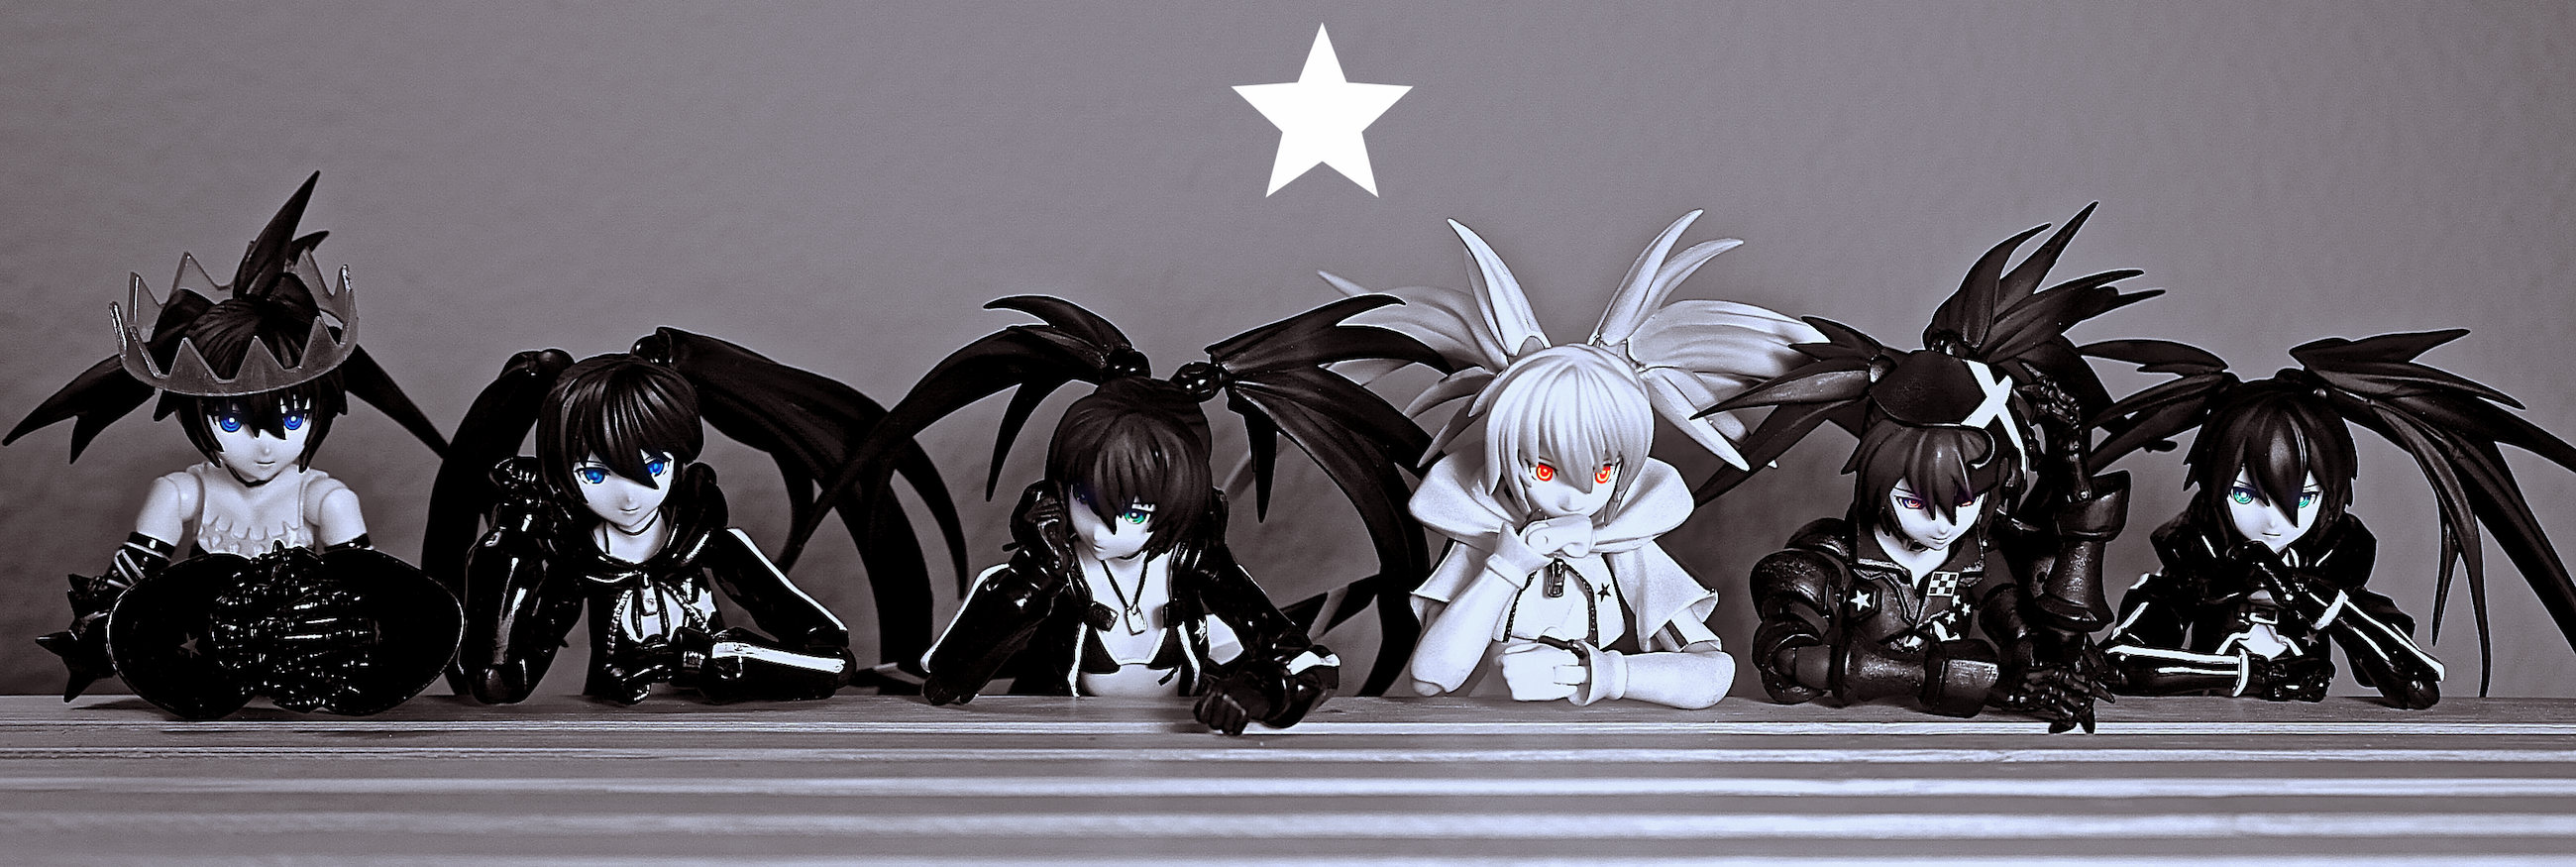 figma huke max_factory good_smile_company asai_(apsy)_masaki black_★_rock_shooter white_★_rock_shooter insane_black_★_rock_shooter black_★_rock_shooter_-_the_game